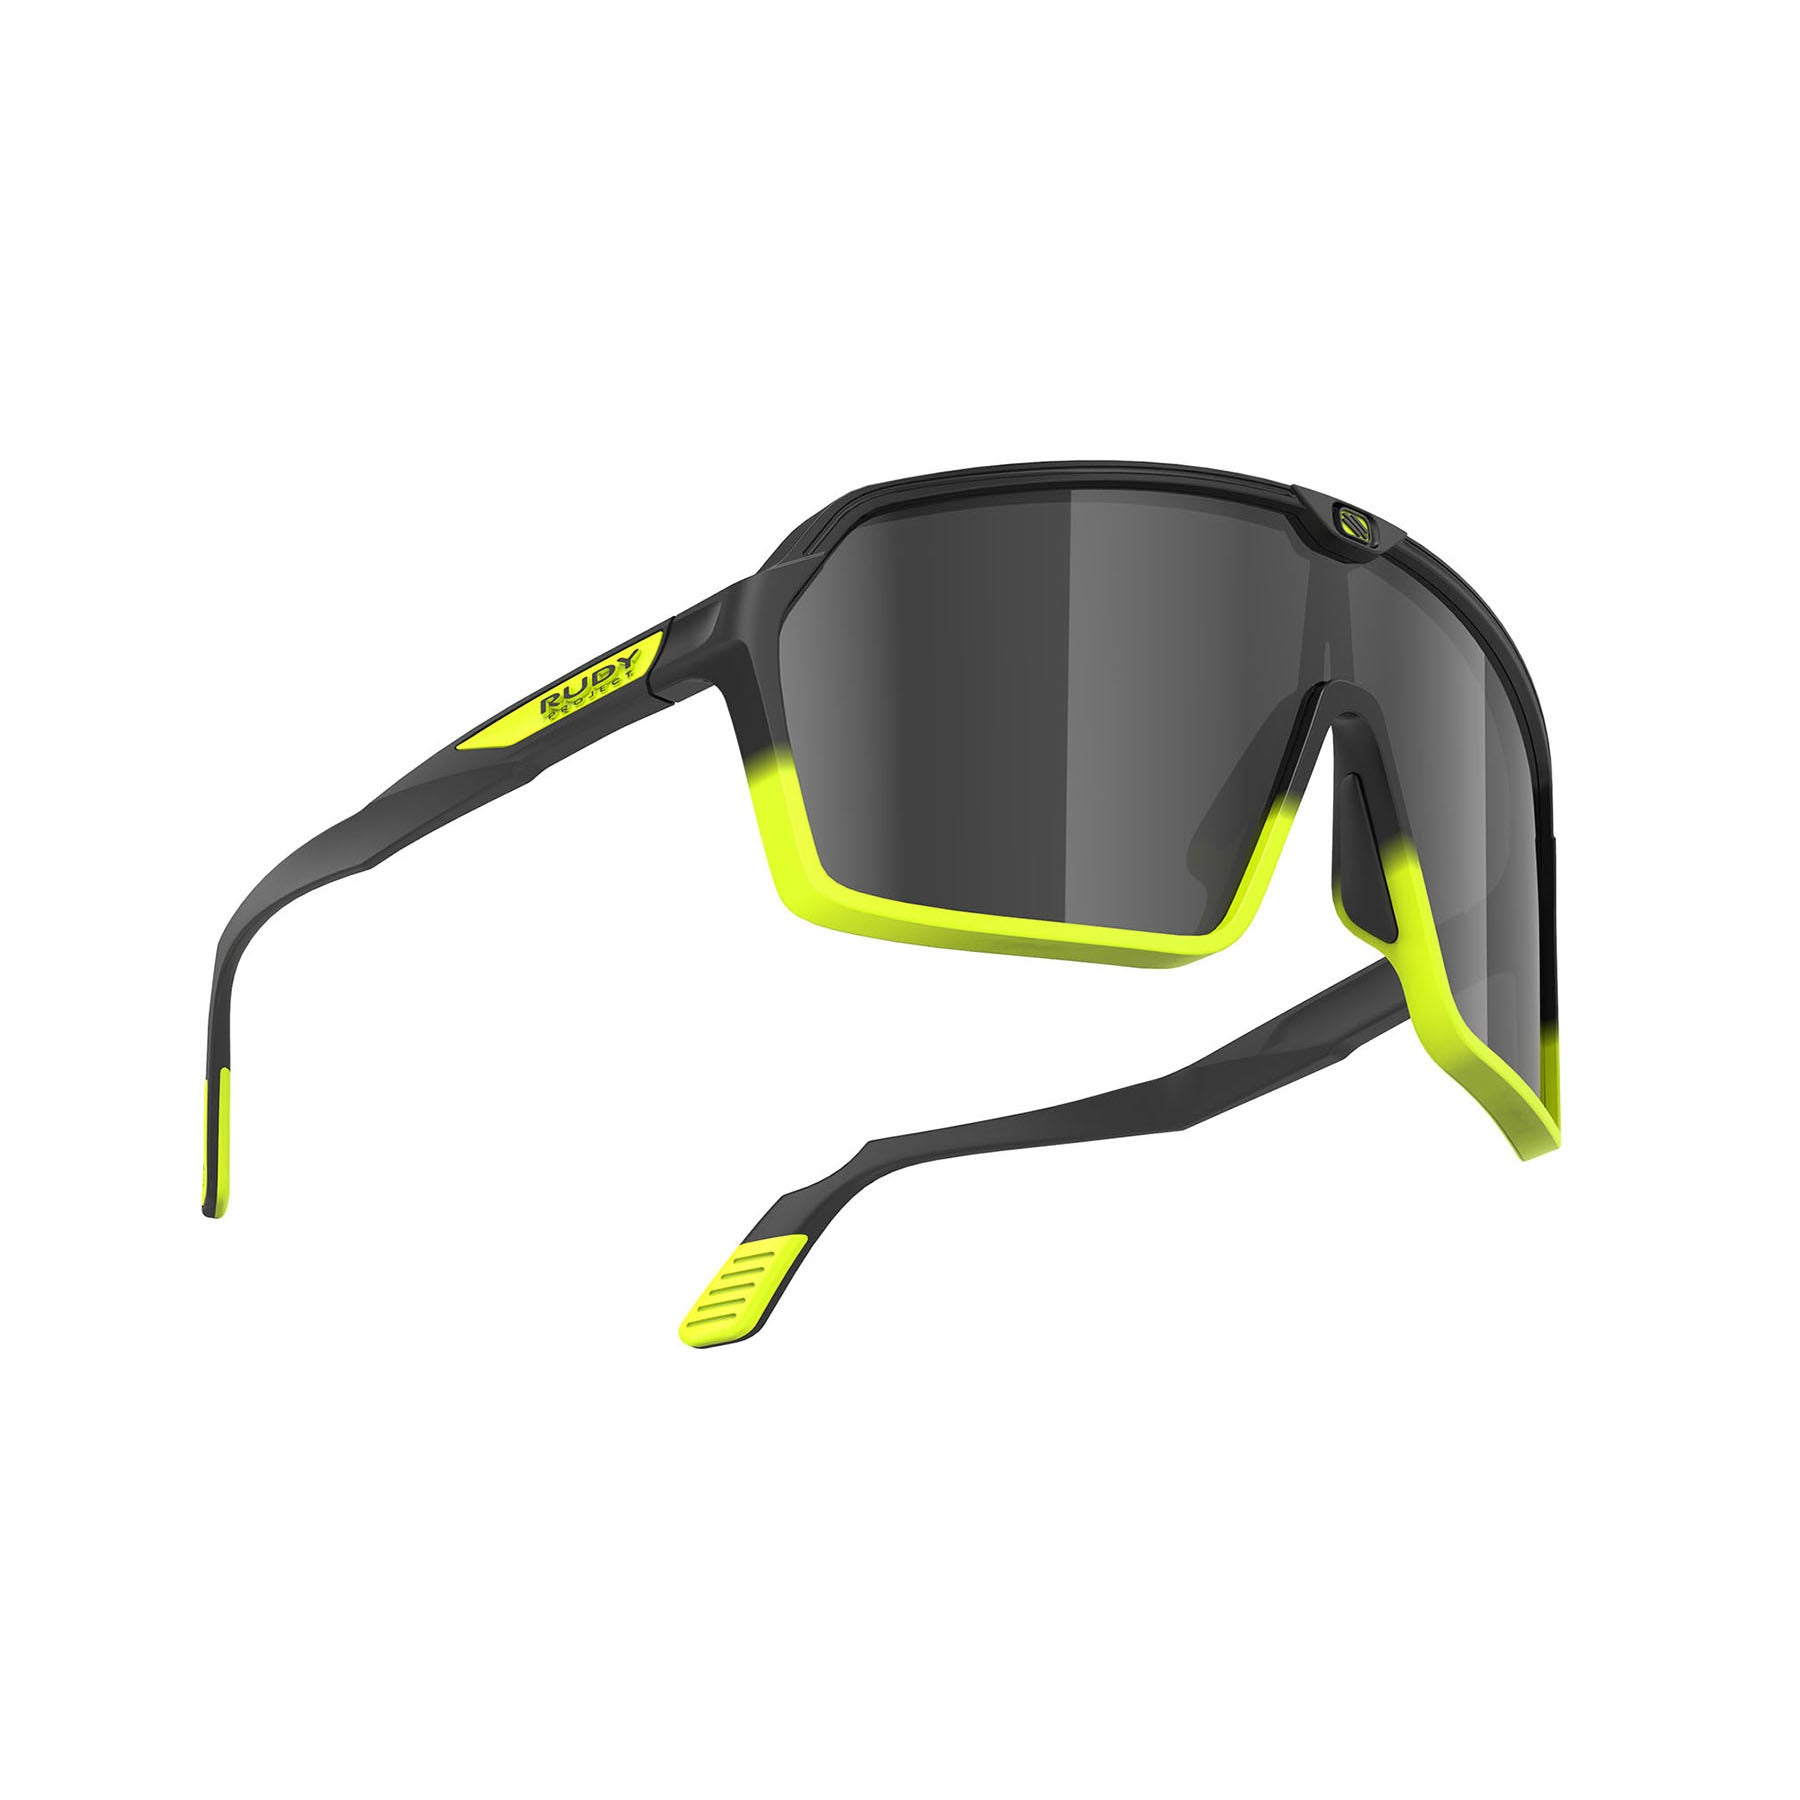 Rudy Project - Spinshield - frame color: Matte Black Yellow Fluo - lens color: Smoke Black - photo angle: Bottom Front Angle Variant Hover Image